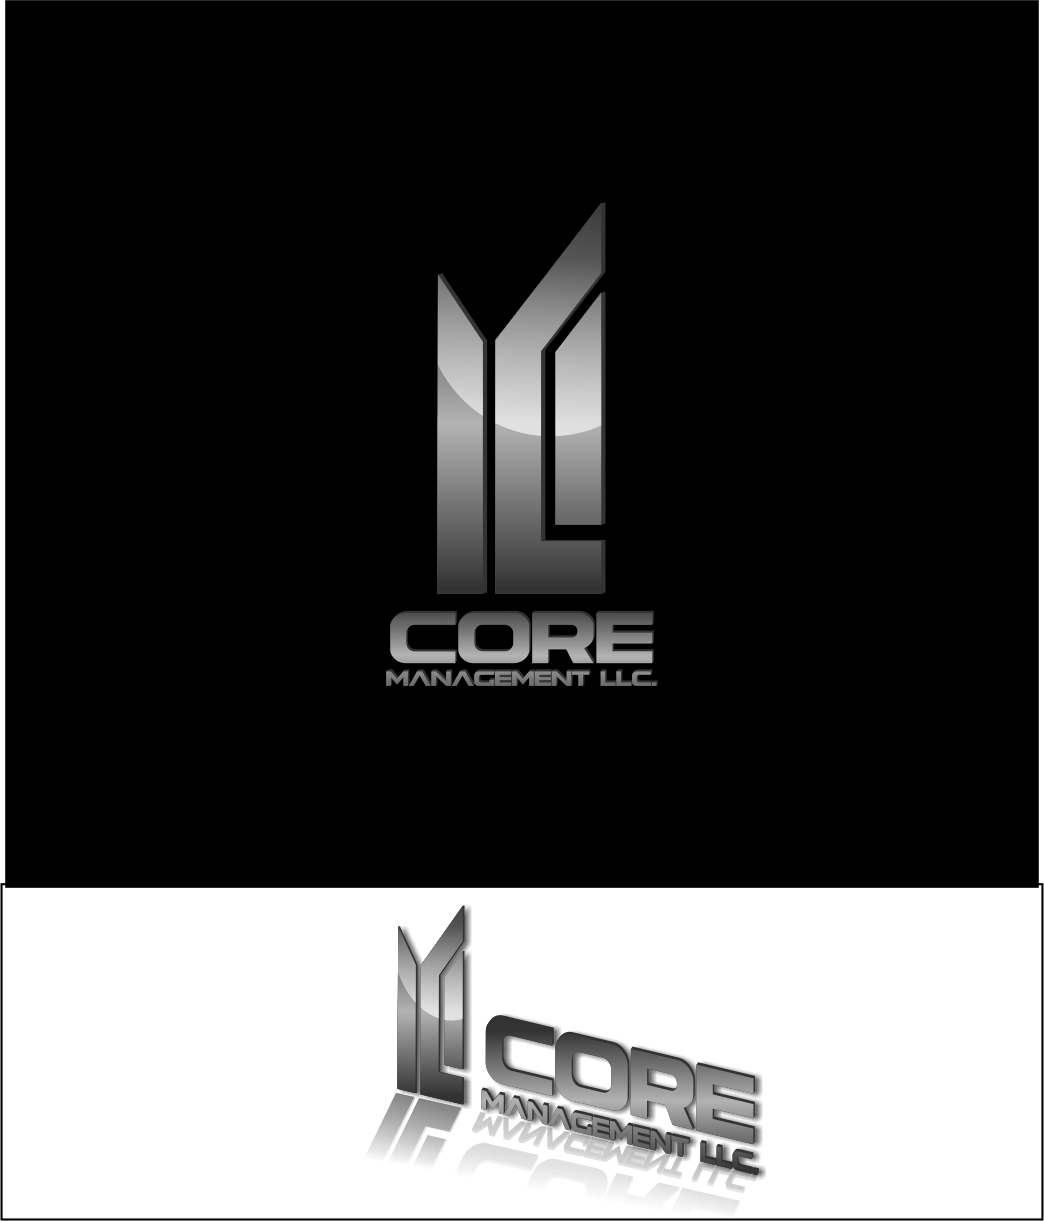 Logo Design by Agus Martoyo - Entry No. 228 in the Logo Design Contest Creative Logo Design for CORE Management, LLC.